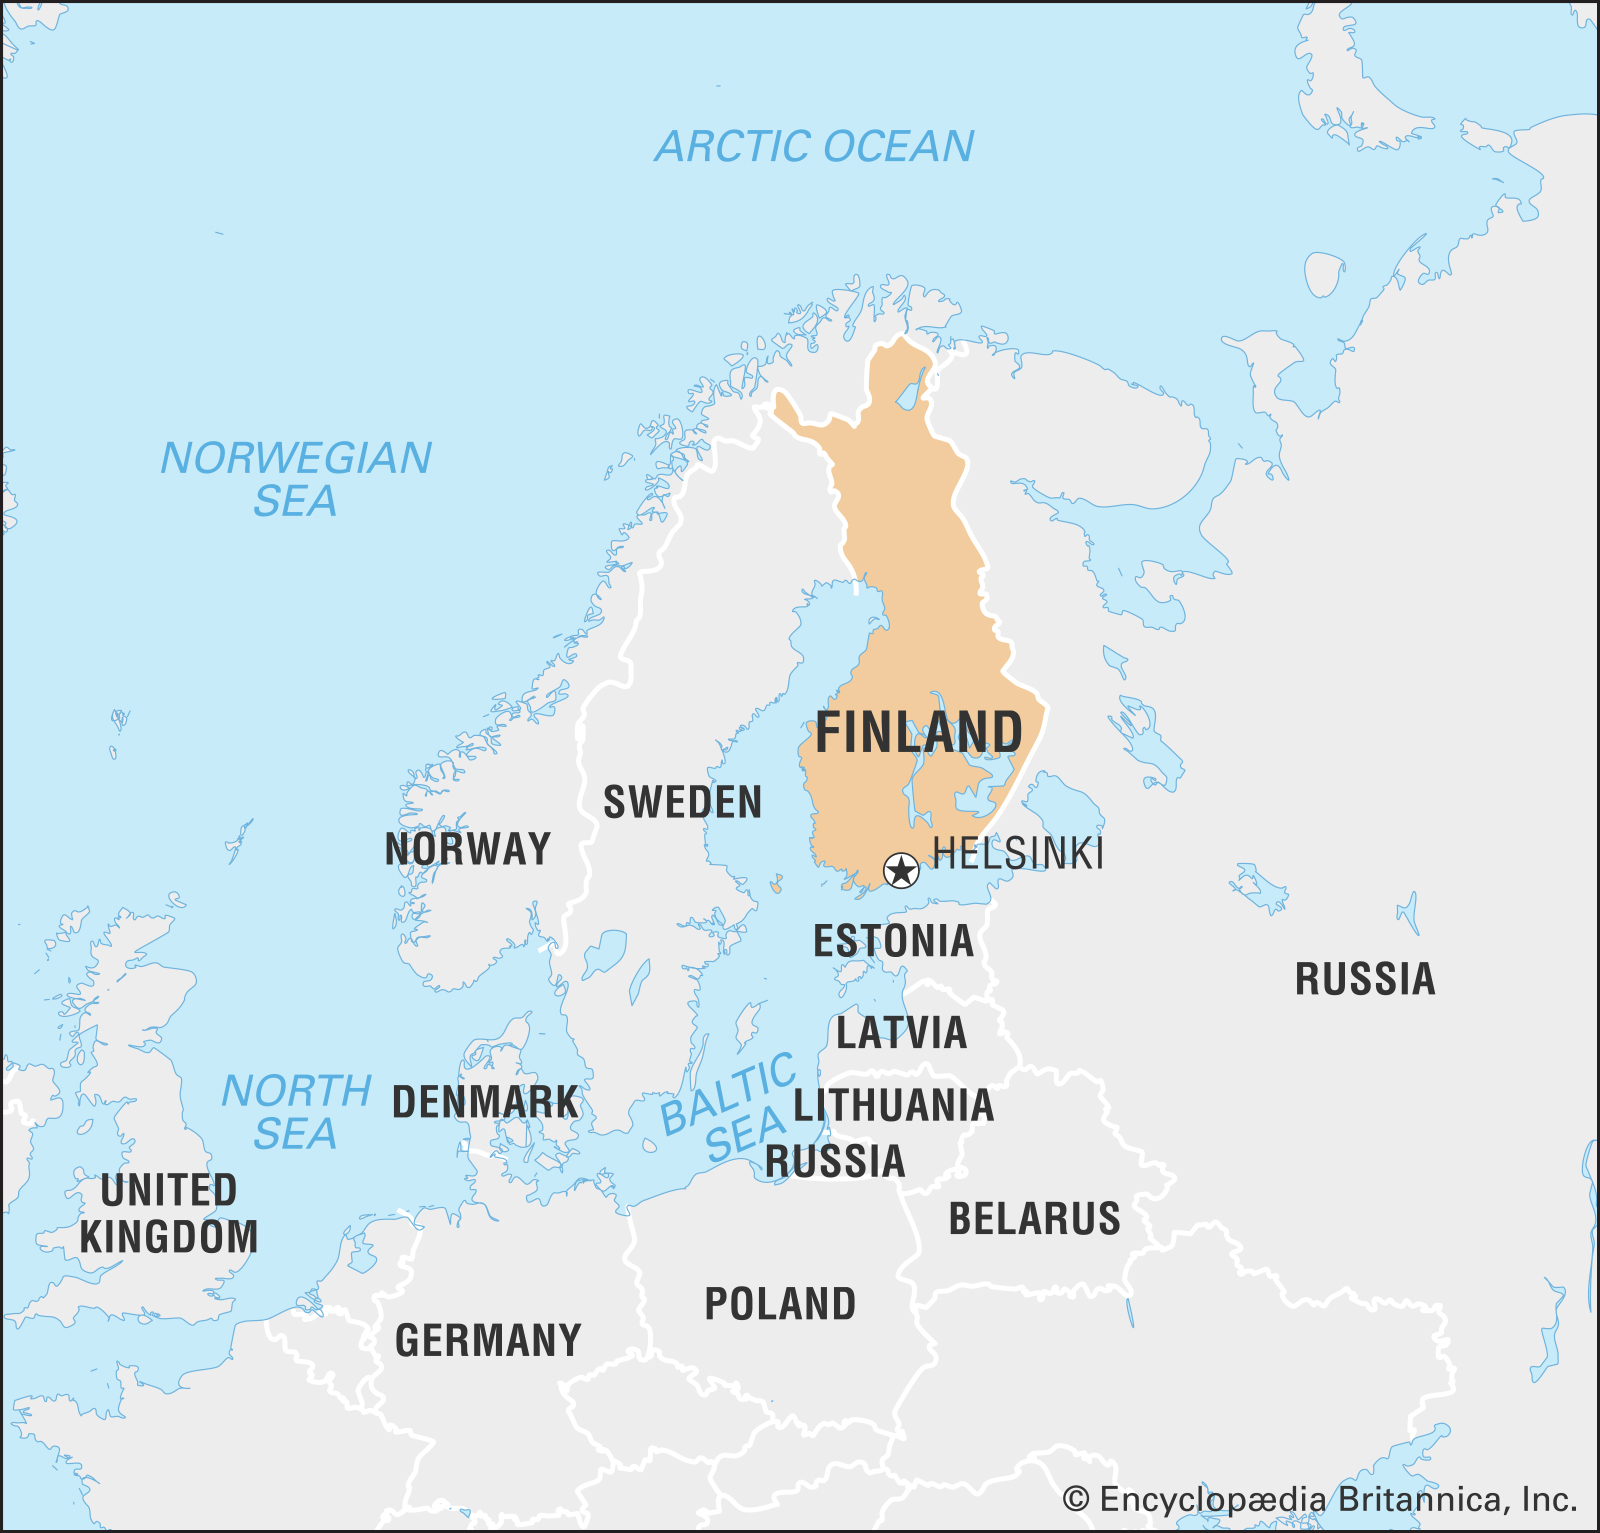 A map of Finland and nearby countries